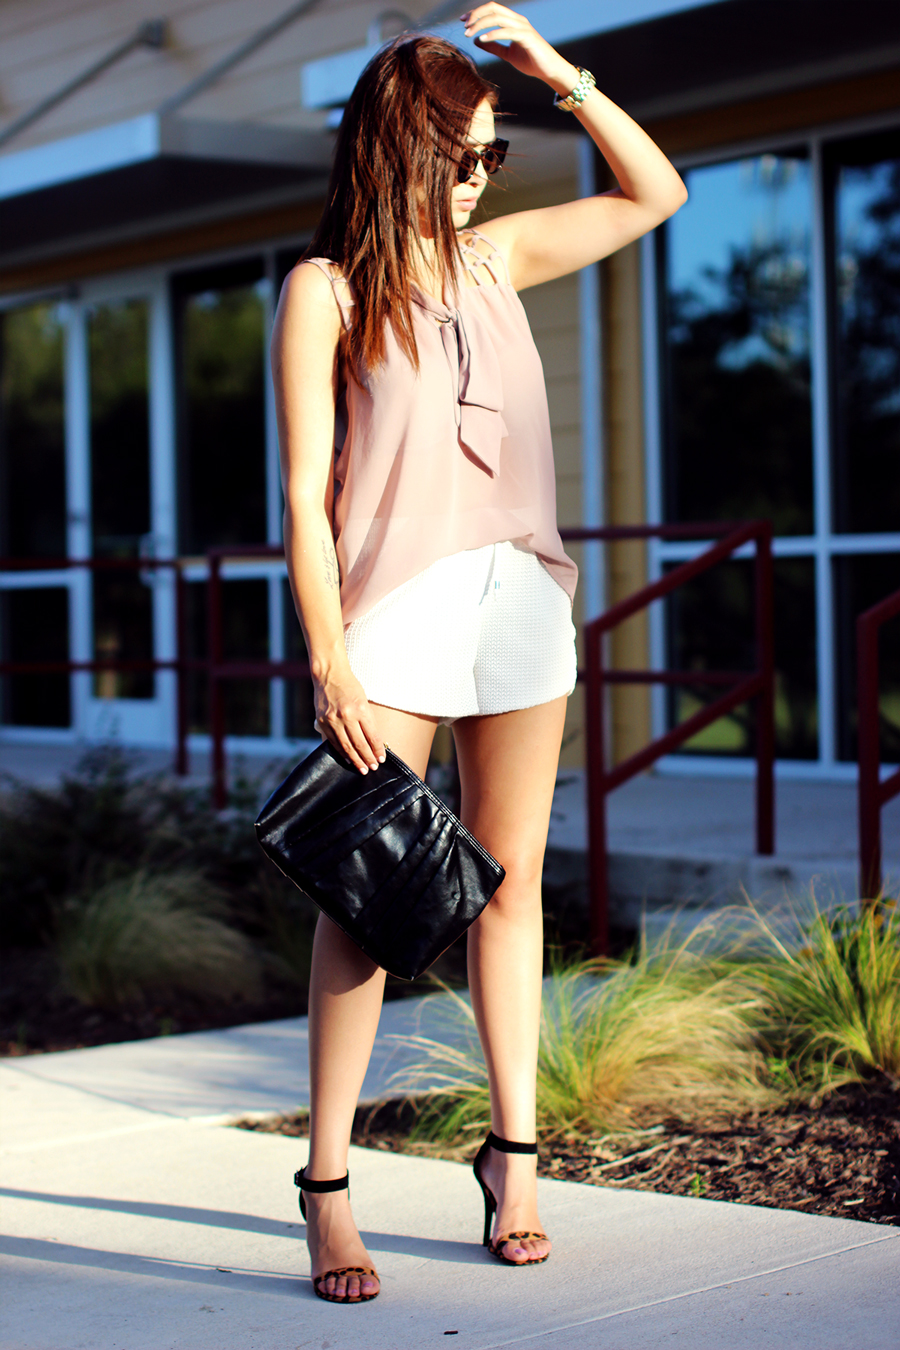 WHITE-SHORTS-ATHLETIC-NEUTRALS-GLAM-STYLIST-CLASSIC-SUMMER-STYLE-FIXIN-TO-THRILL-AUSTIN-FASHION-BLOG-TEXAS-4